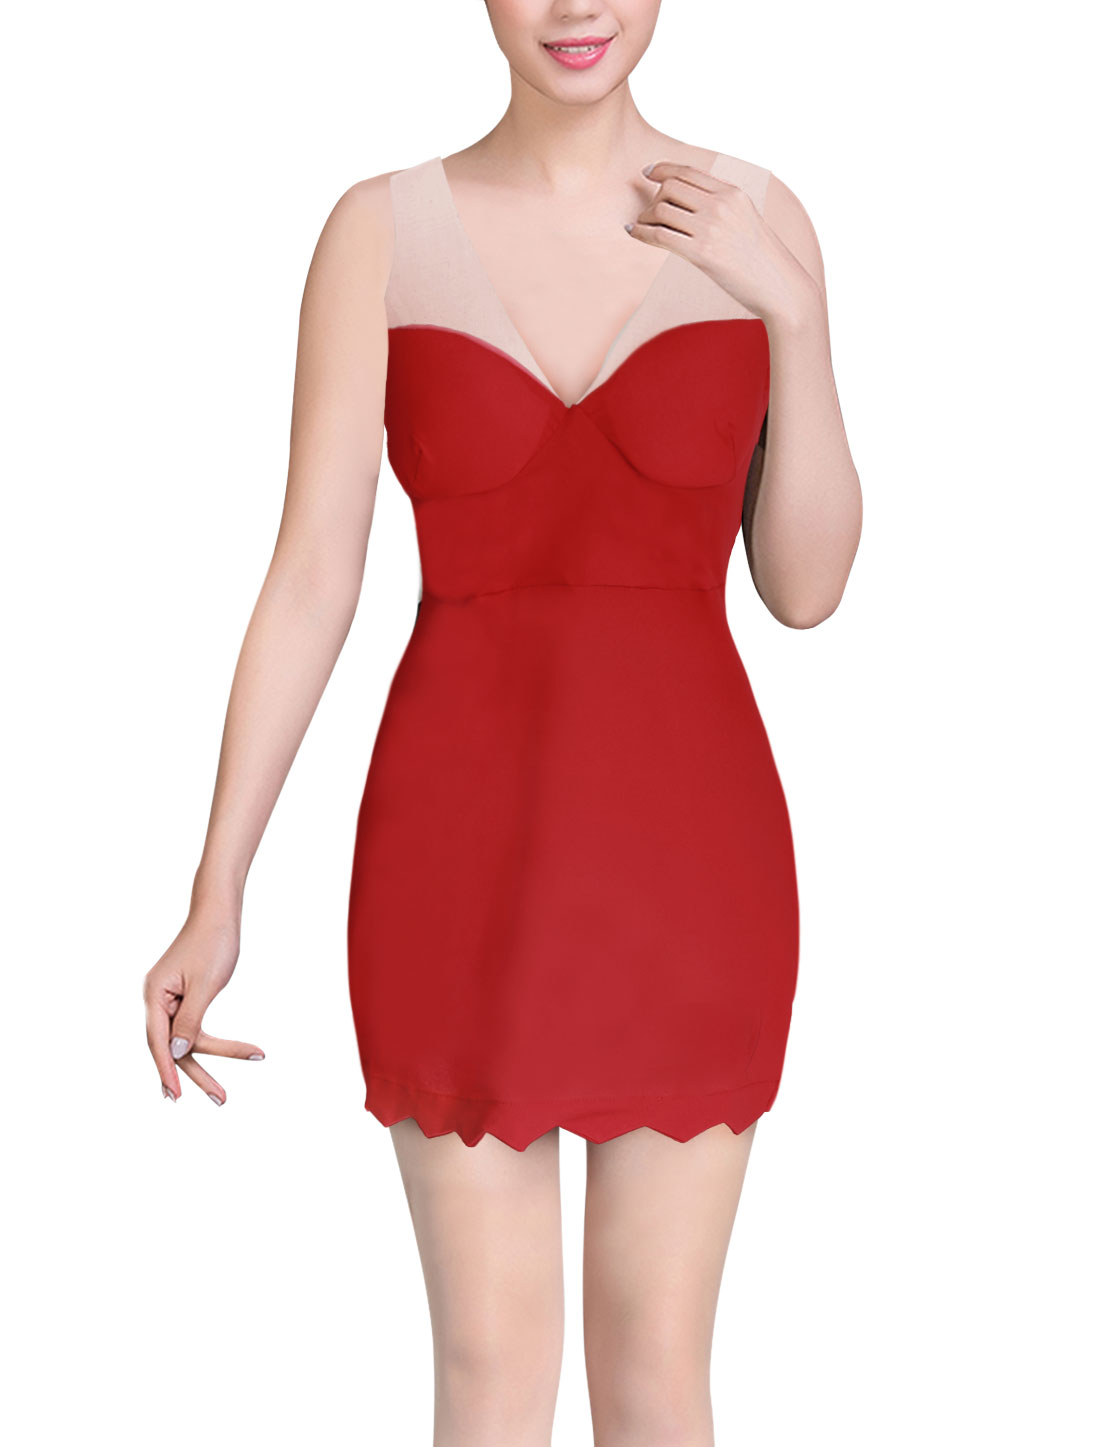 Woman Mesh Panel Padded Bust Deep V Neck Sleeveless Sexy Dress Red M